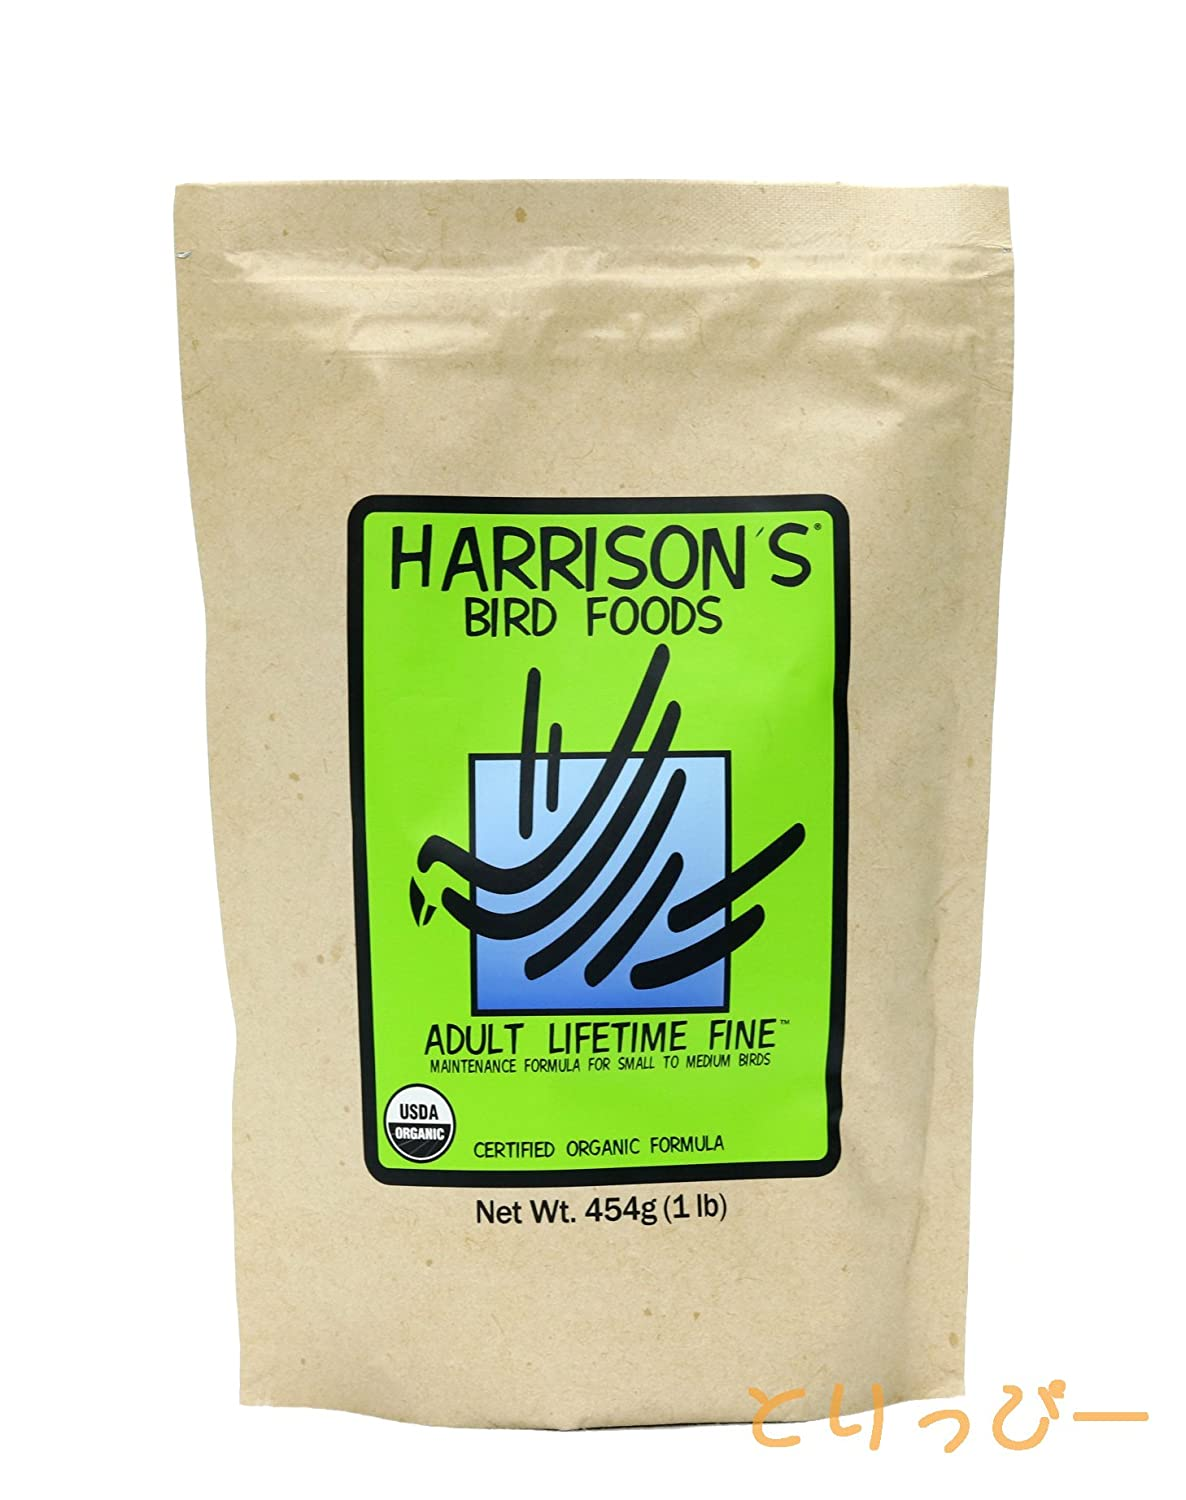 Harrisons Adult Lifetime Fine Organic Food